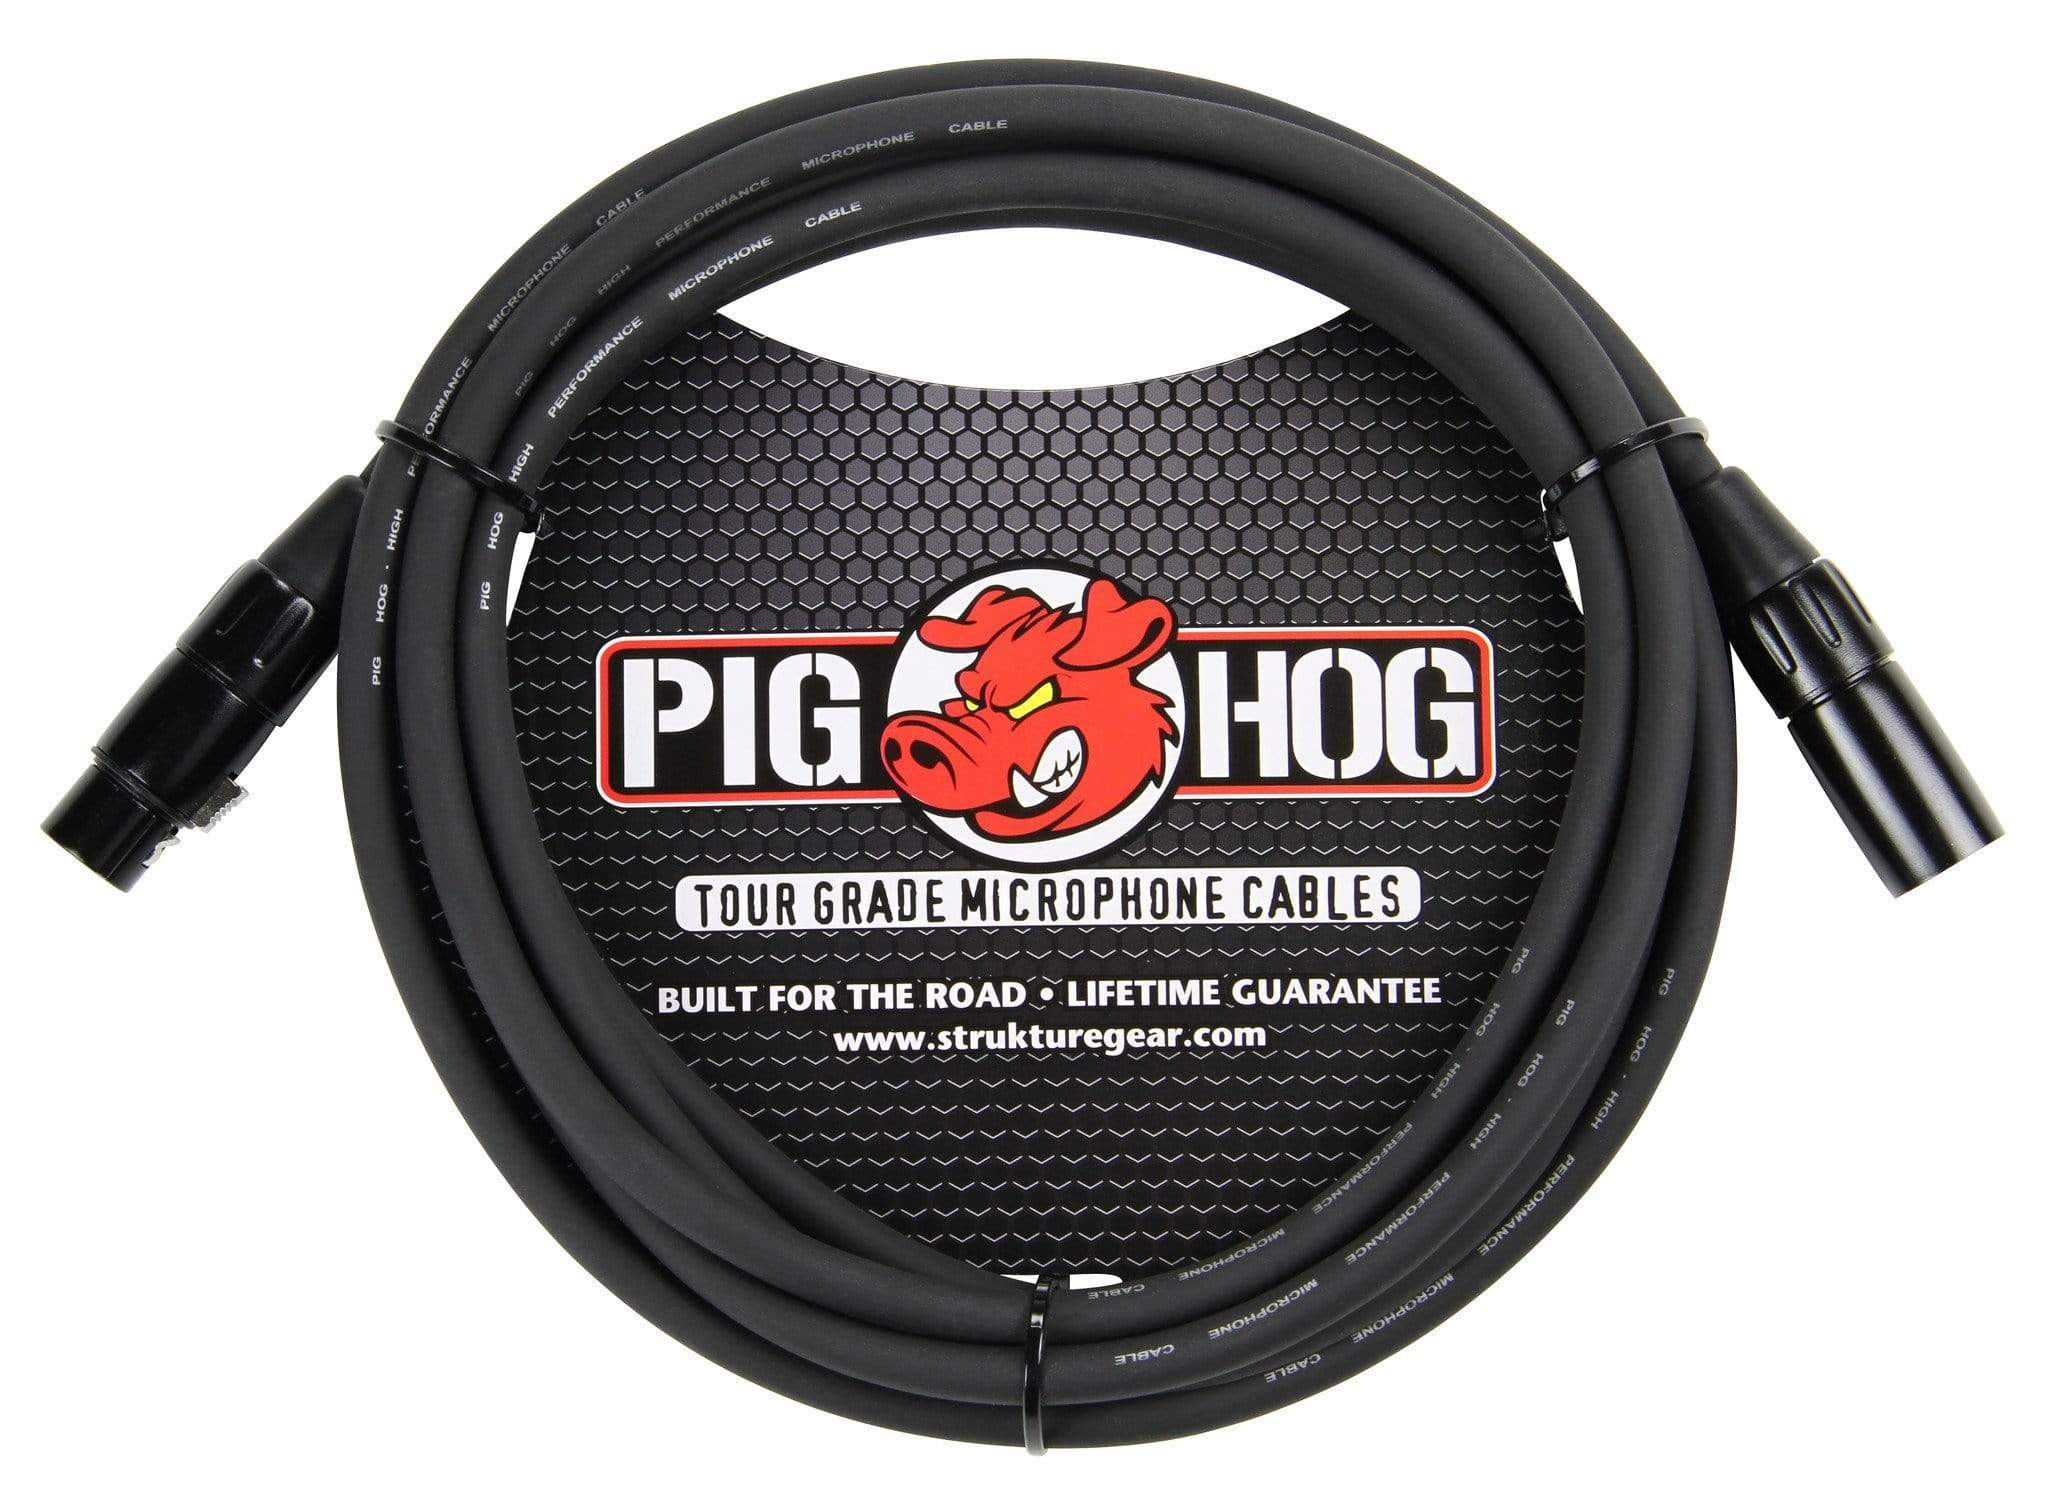 PIG HOG MICROPHONE CABLES Pig Hog 10' Foot Ft Microphone Cable XLR Lifetime Warranty 8mm Tour Grade PHM10